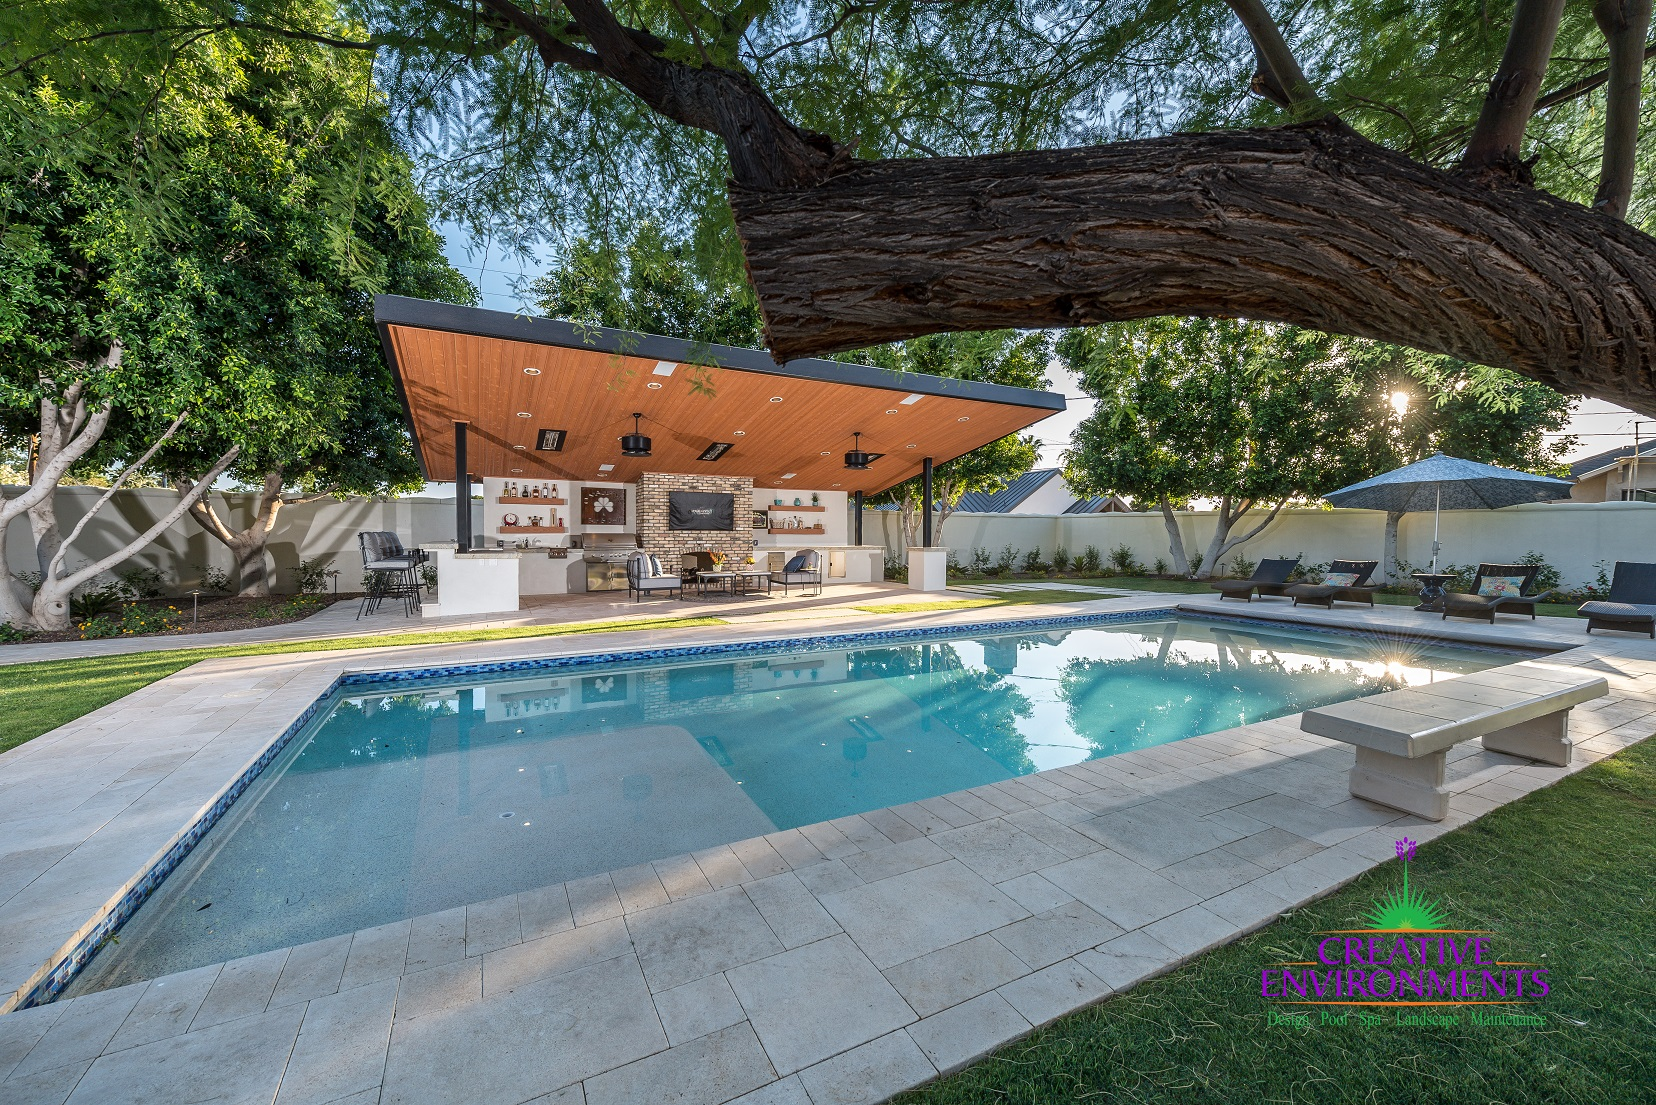 Large custom pool with covered patio space for an outdoor kitchen